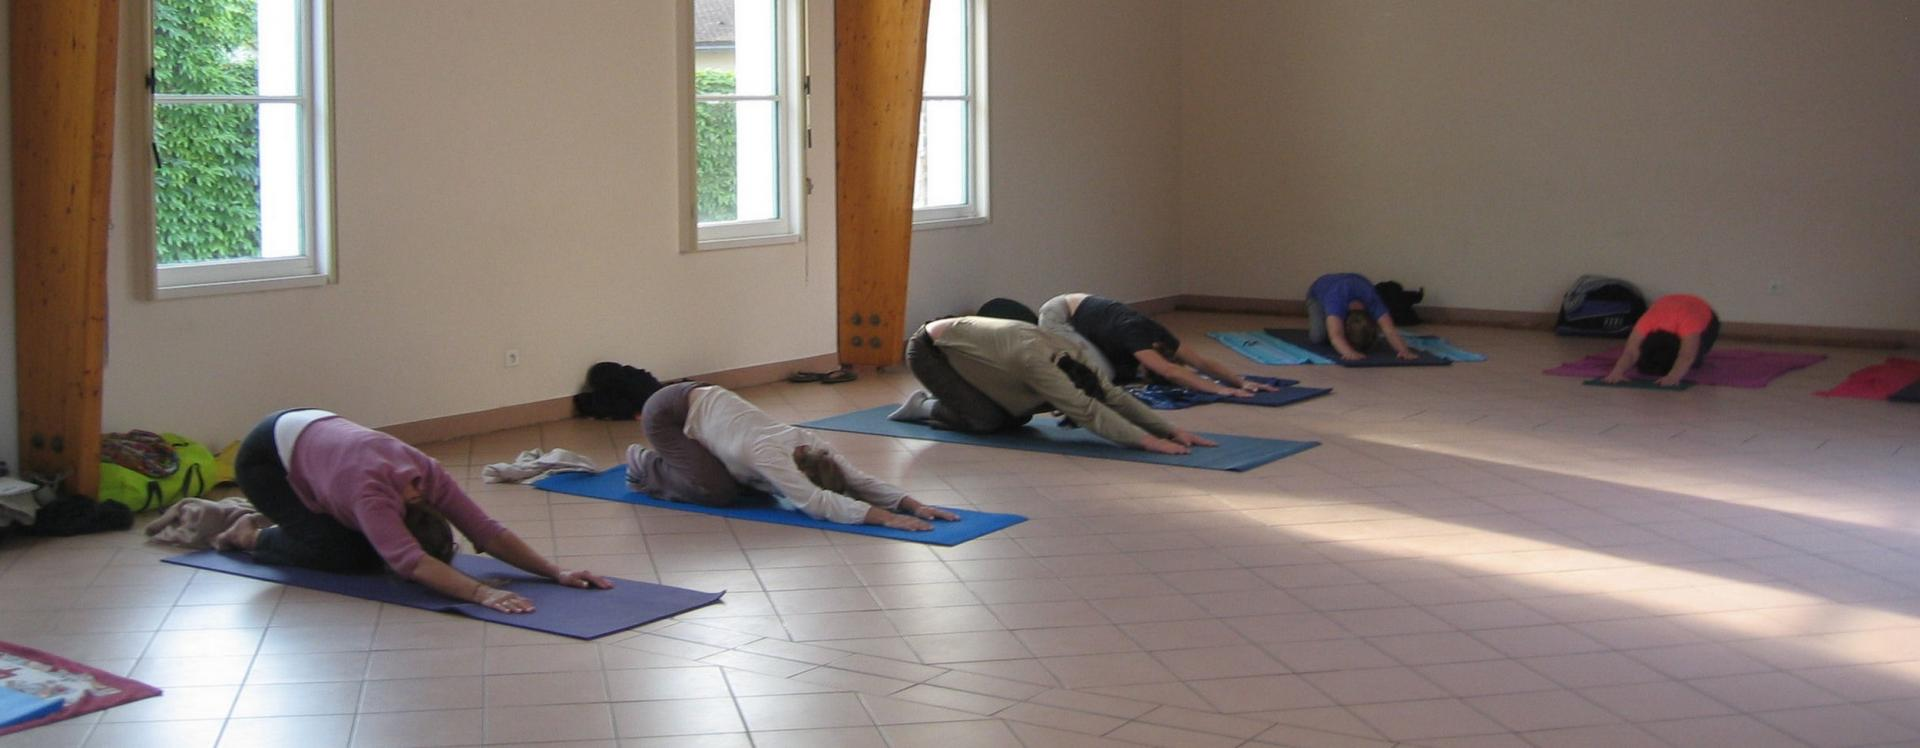 Entente Sportive de la Forêt - section YOGA